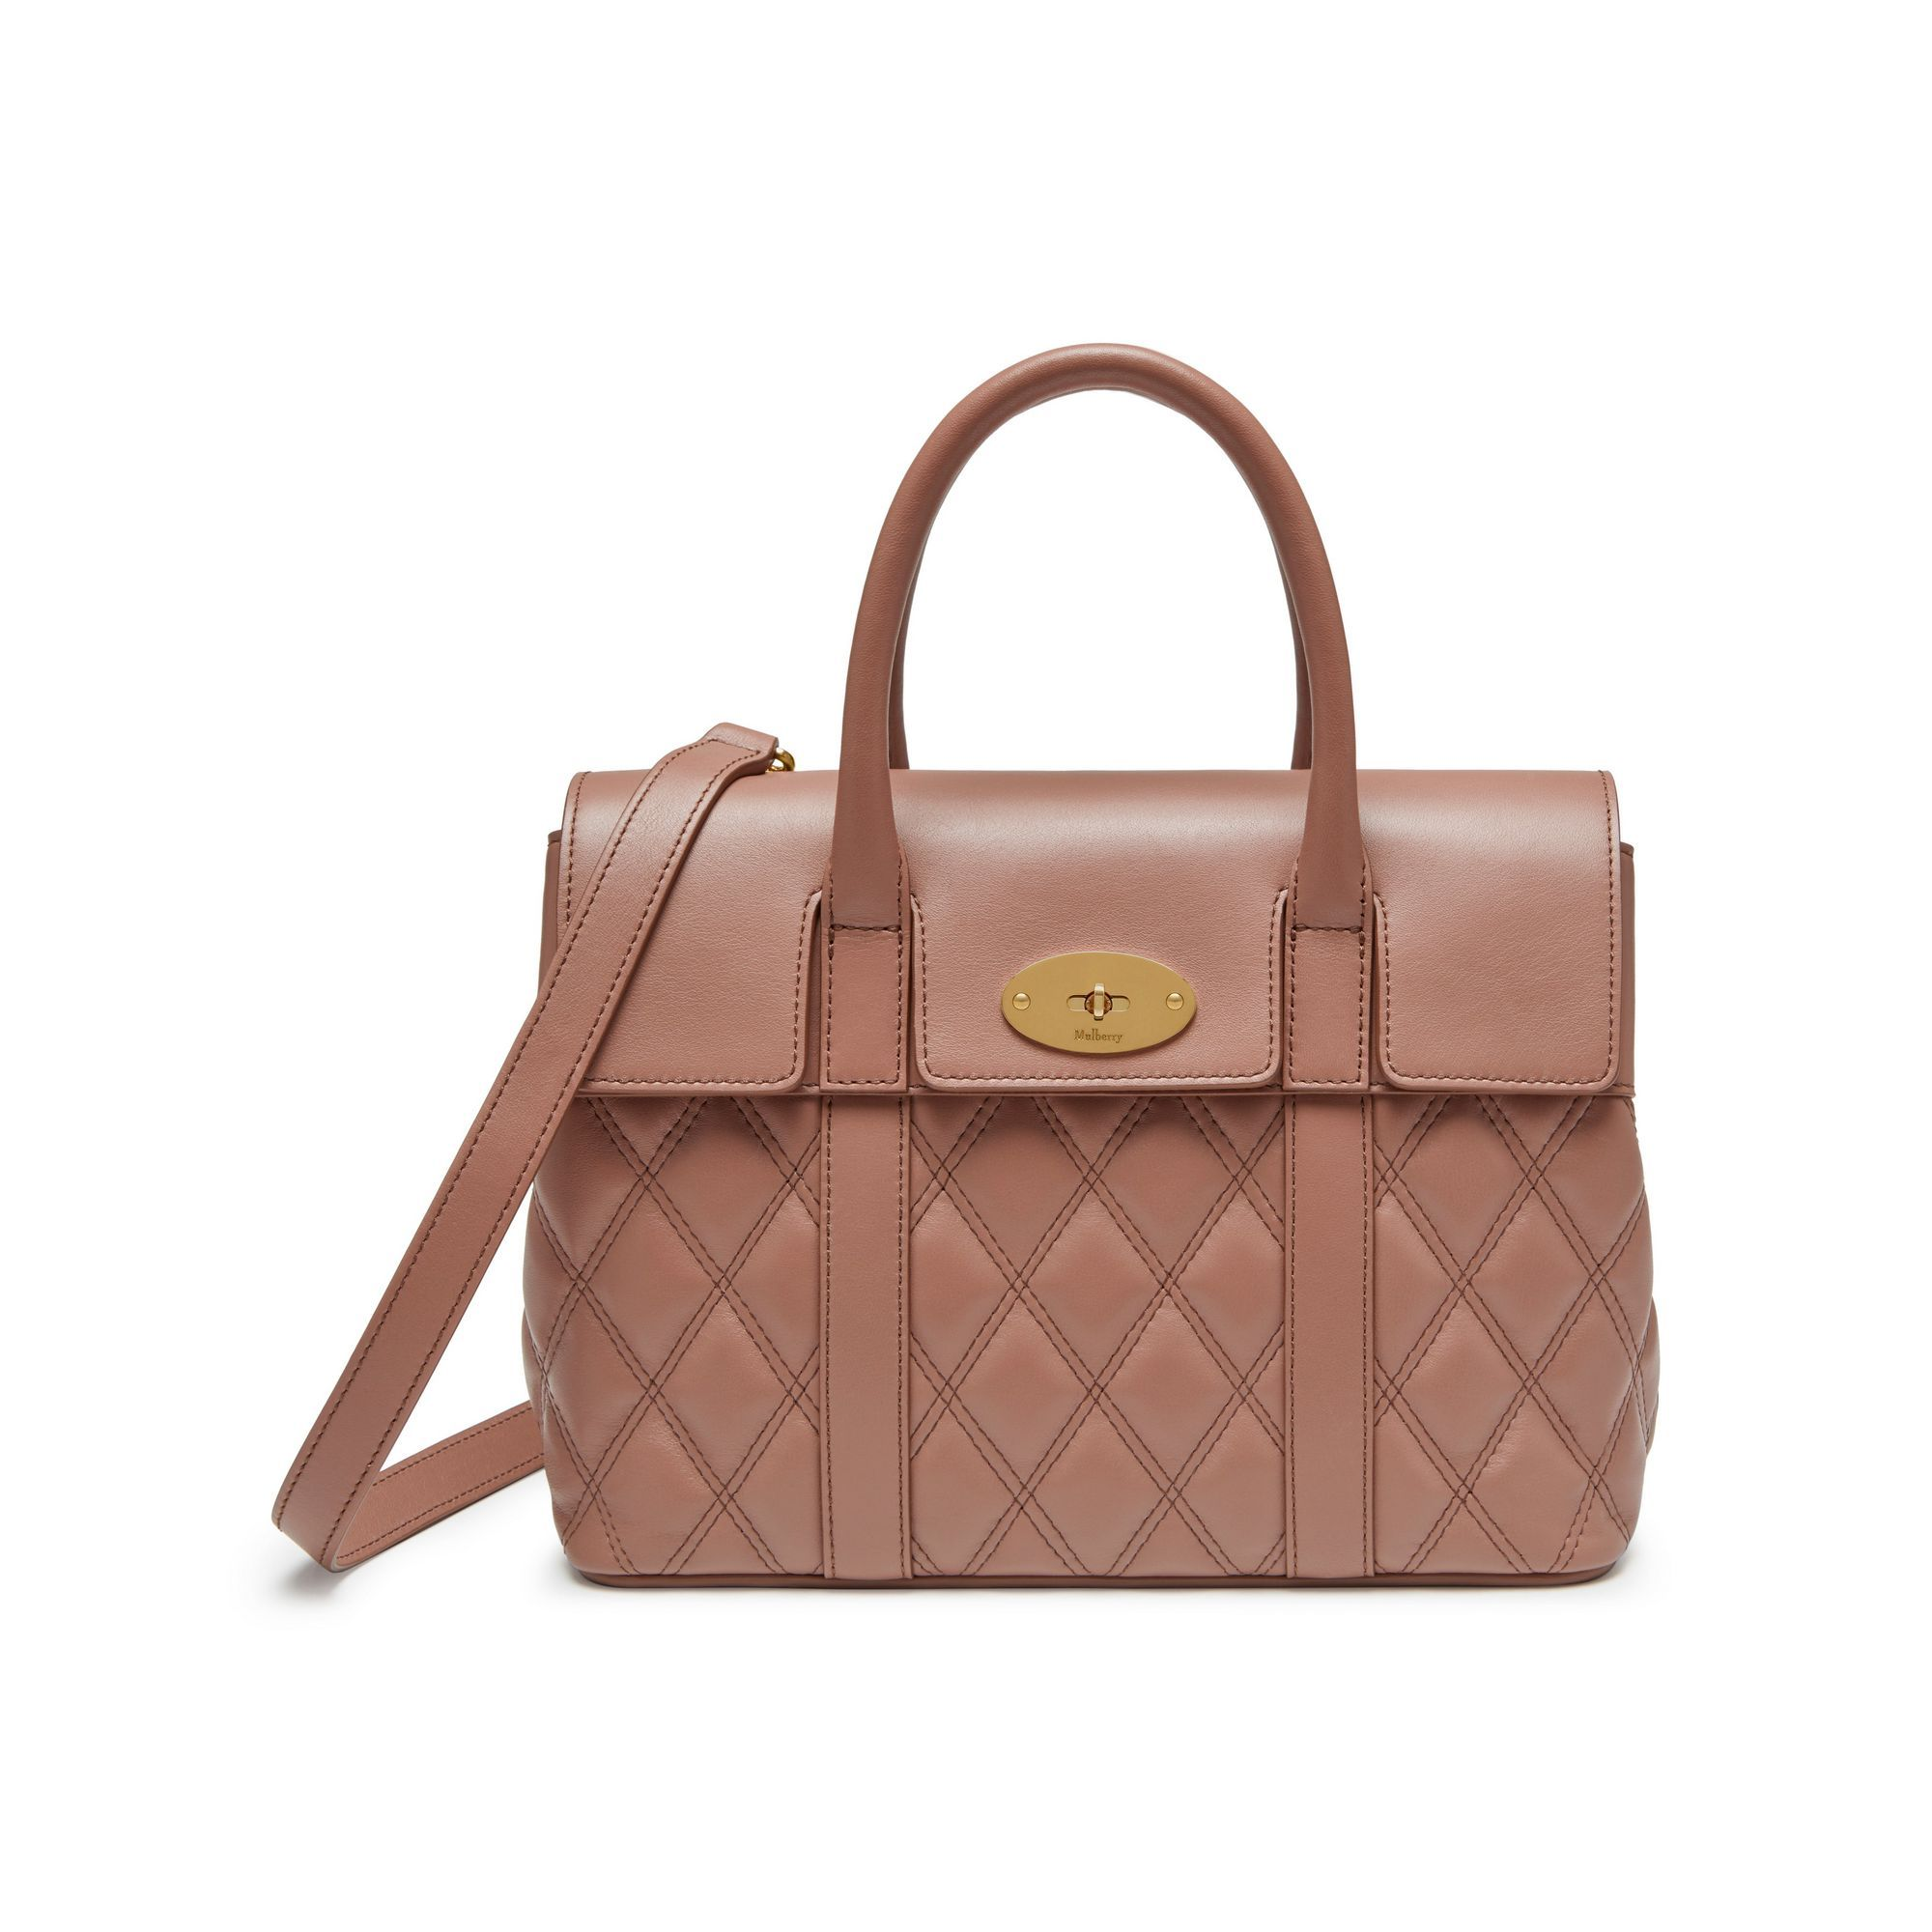 Shop the Small Bayswater in Quilted Dark Blush Leather at Mulberry.com. The  Bayswater 1652ba523668d